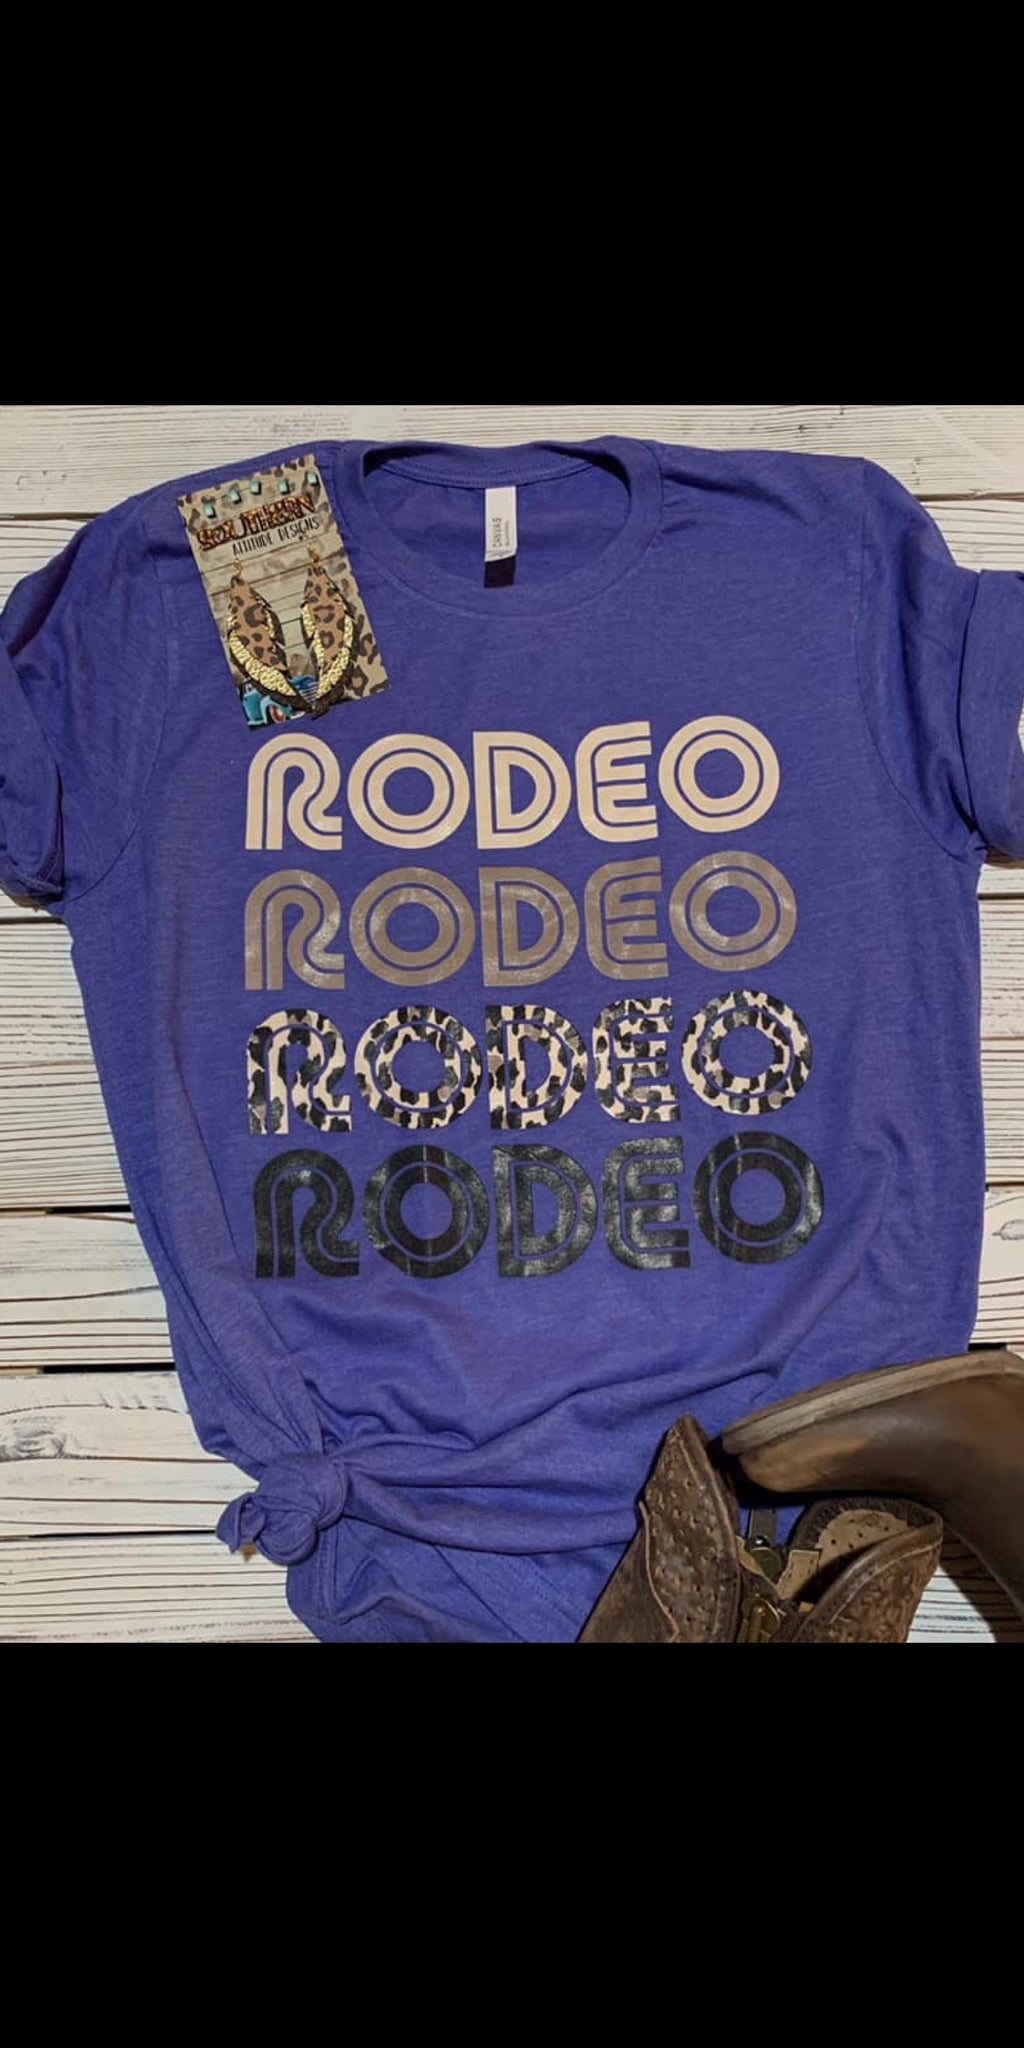 Rodeo Rodeo Rodeo Top - Also in Plus Size